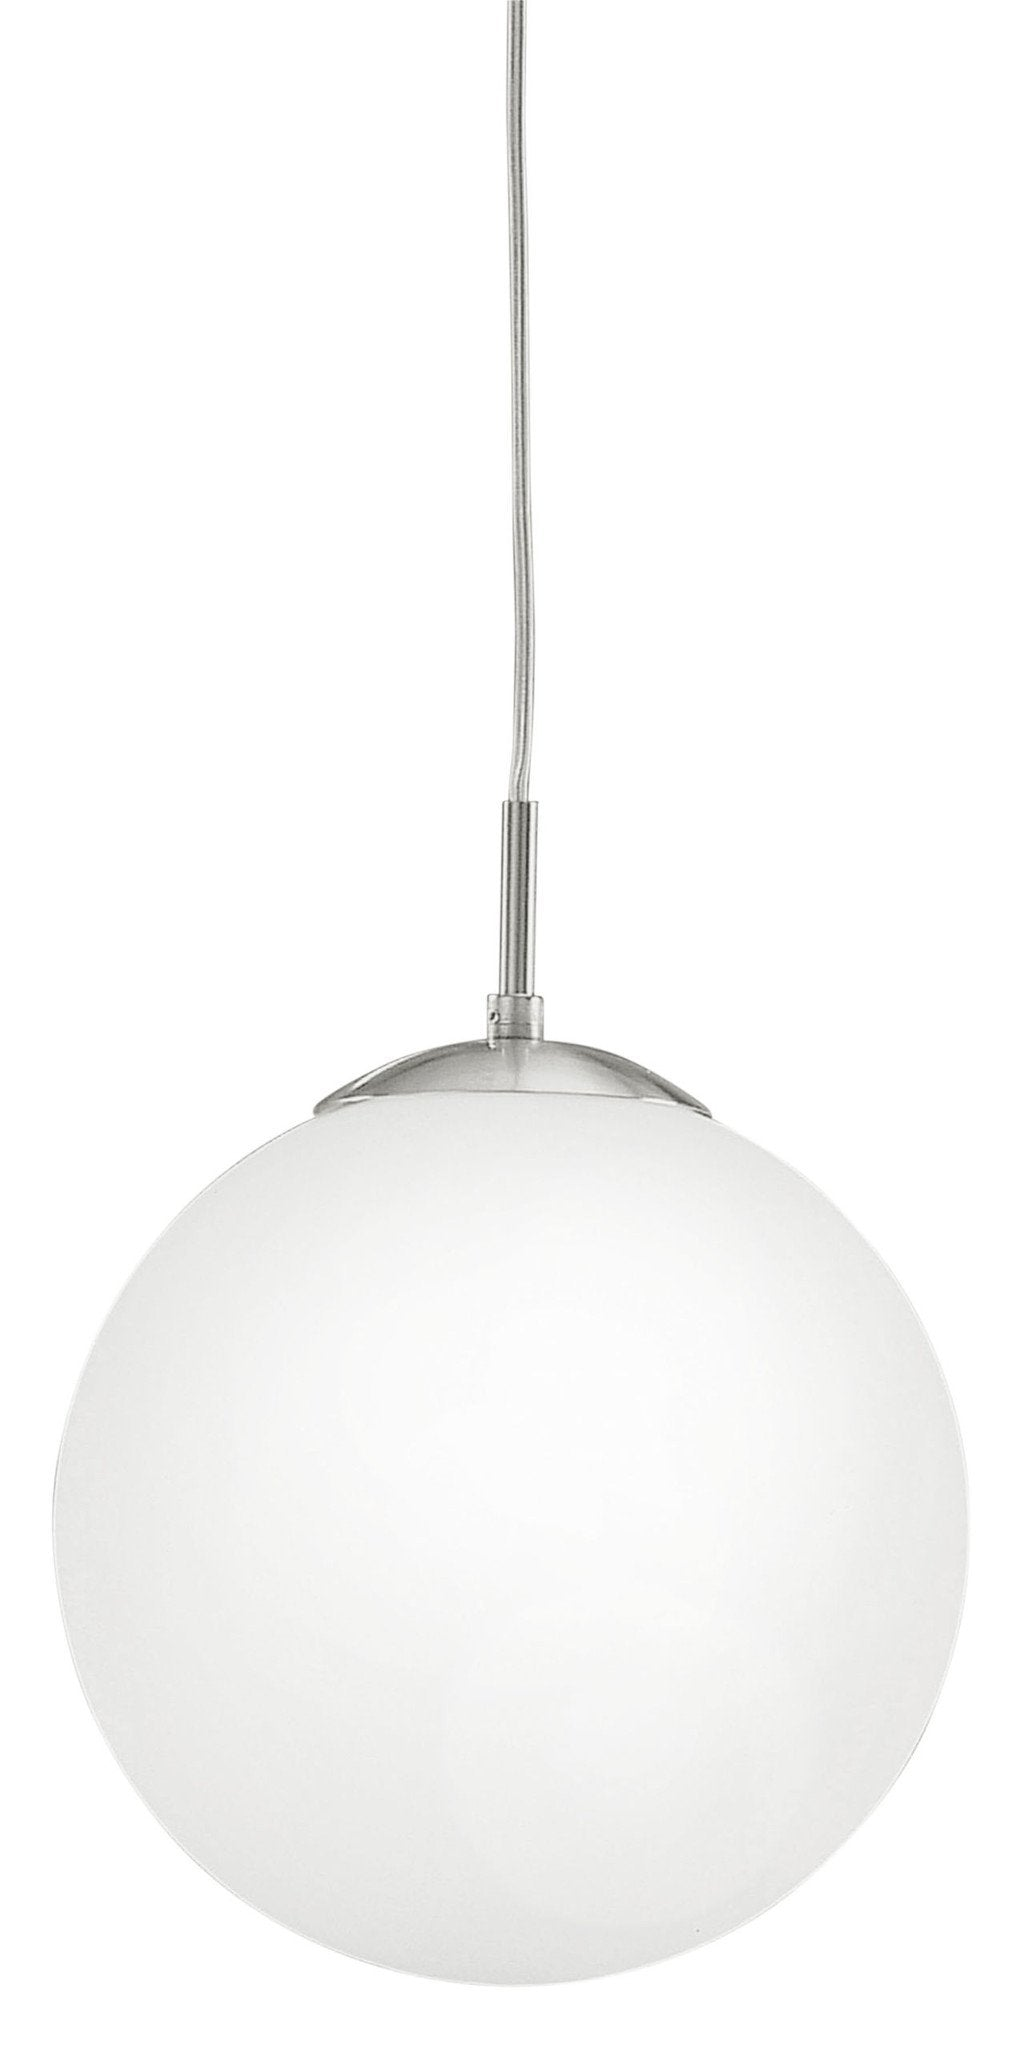 Bemerkenswert Nickel Matt Dekoration Von Eglo Lighting 85262 Rondo Hl/1 Dm250 Nickel-matt/opal-matt